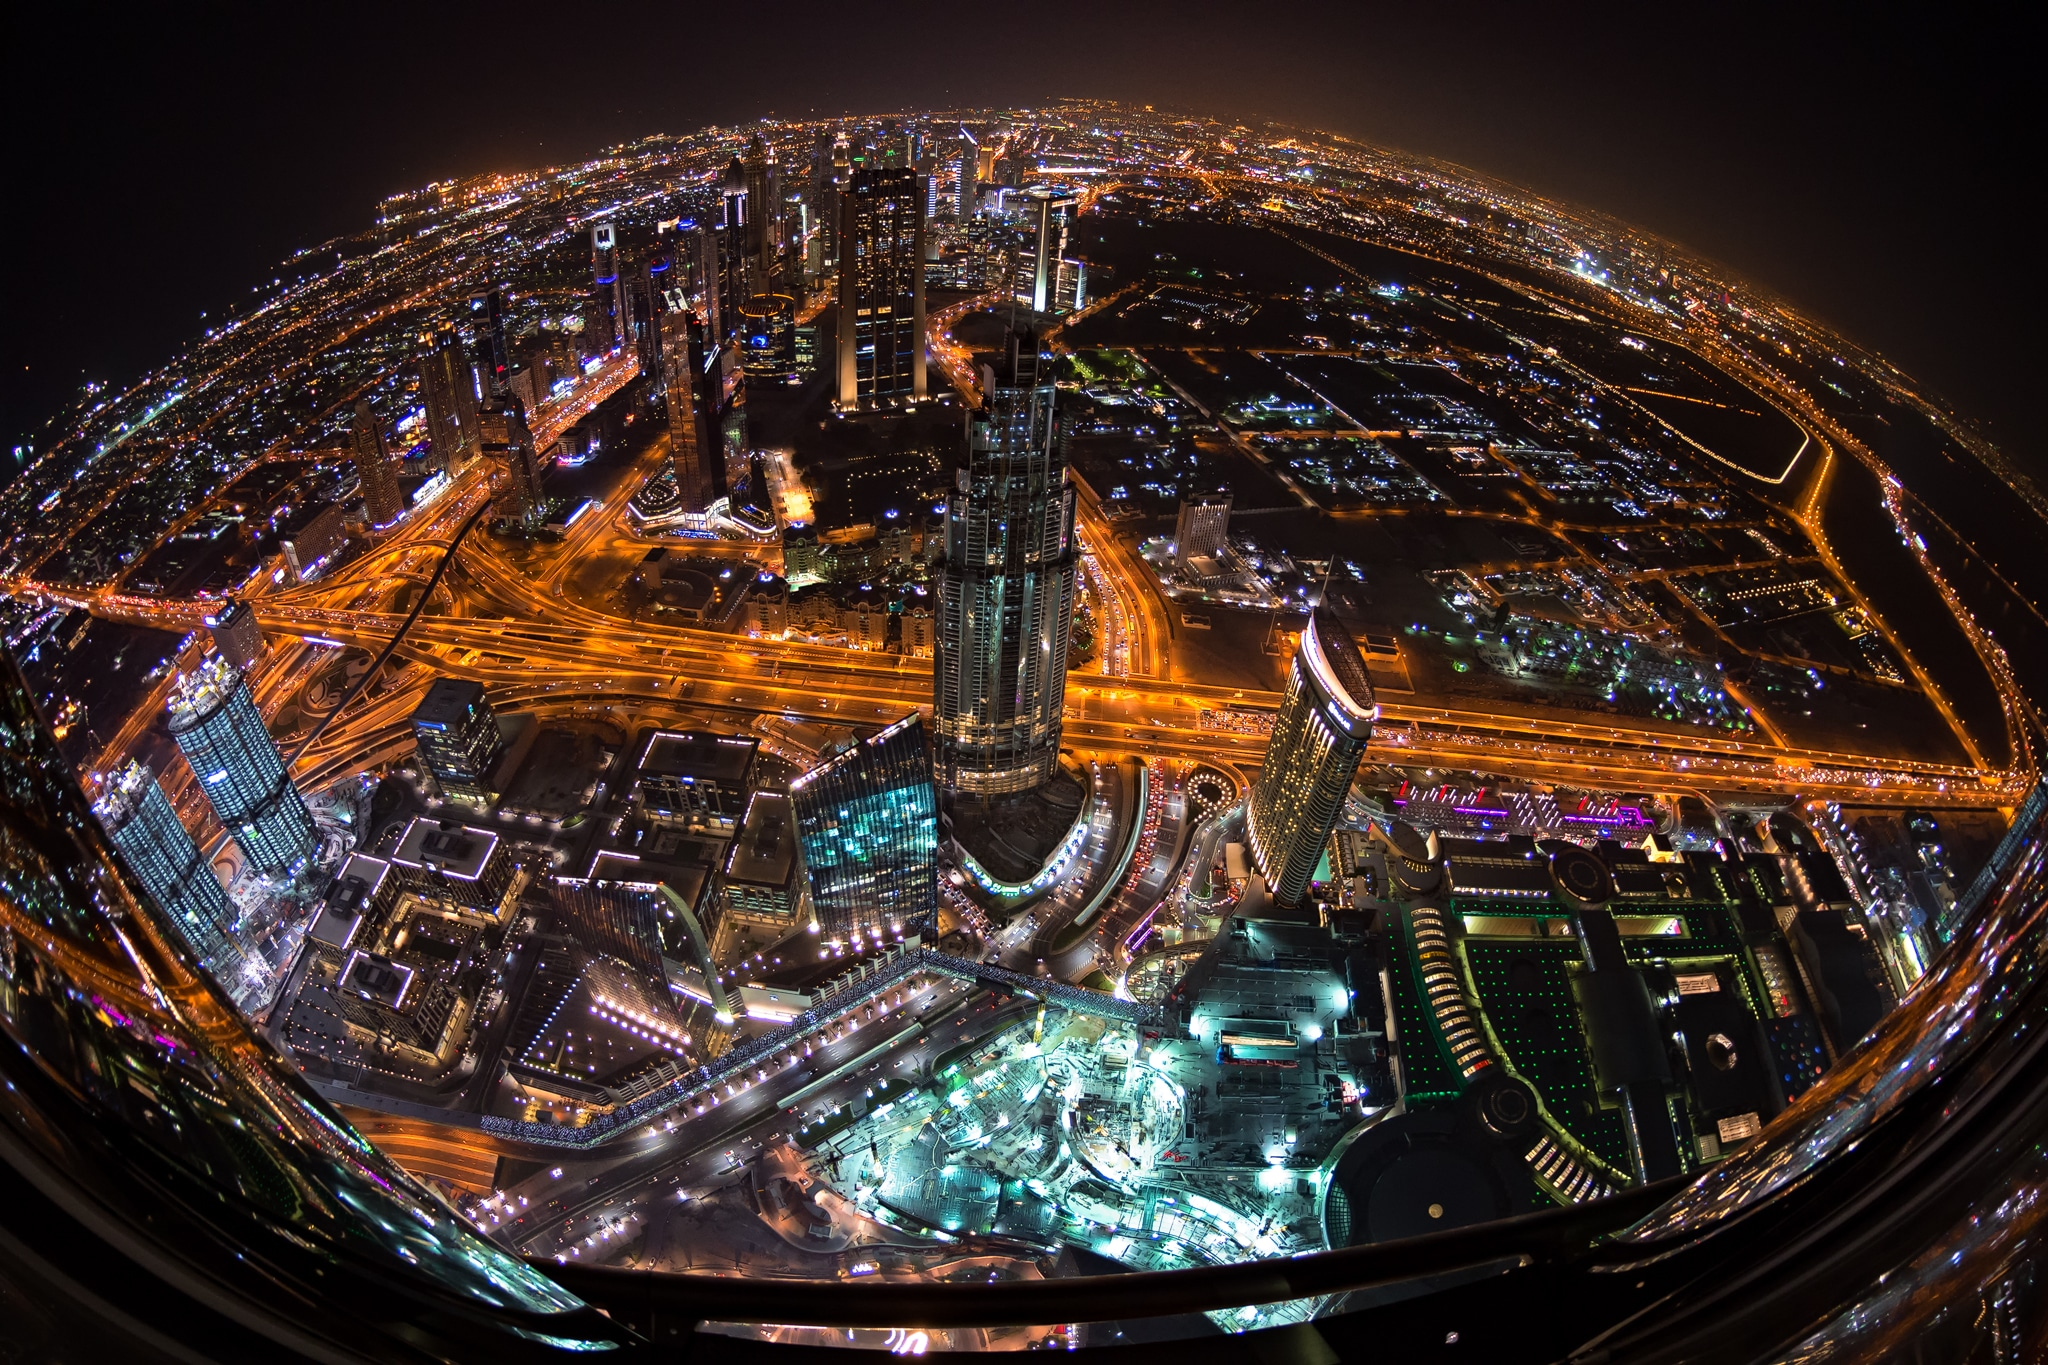 At the top (Dubai,UAE)